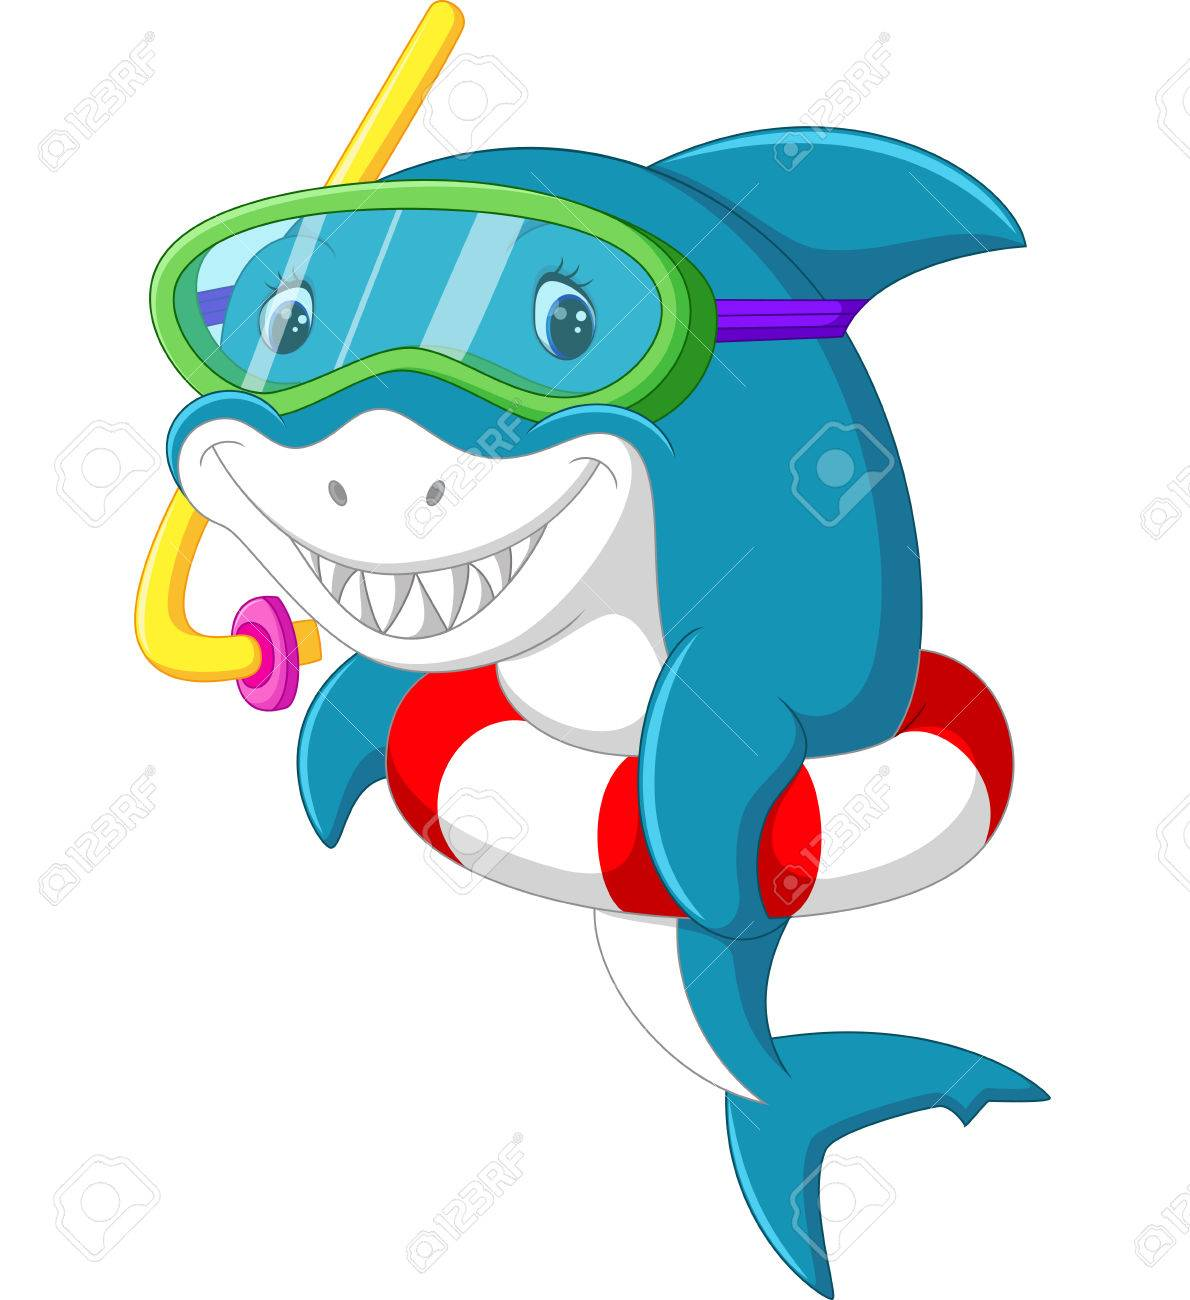 IMAGE(https://previews.123rf.com/images/hermandesign2015/hermandesign20151607/hermandesign2015160700318/60915936-cute-shark-cartoon-with-inflatable-ring.jpg)